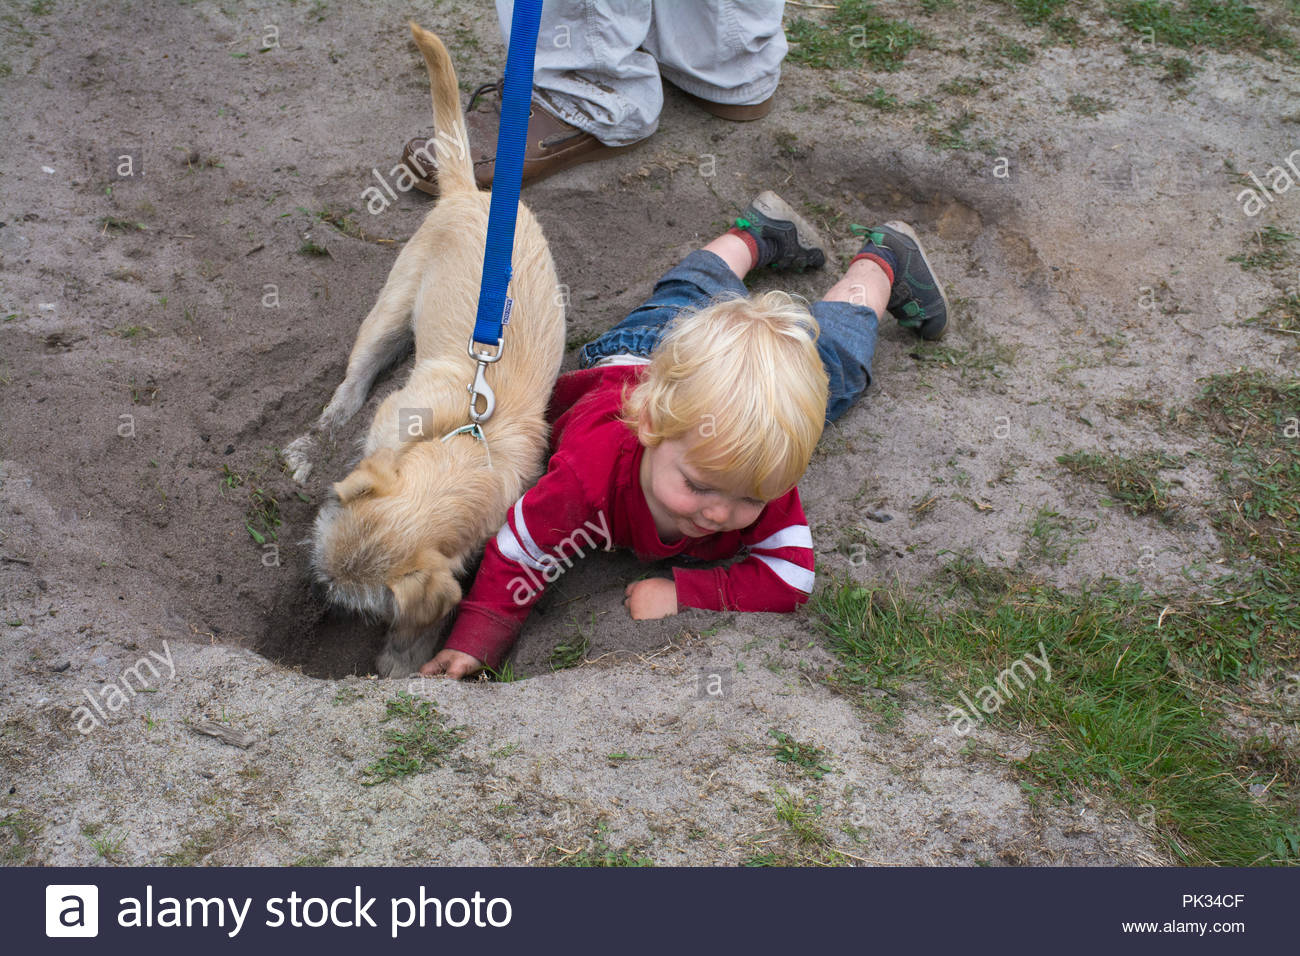 Small child playing in the dirt with a pet dog, digging a hole. Concept of children playing outside in nature - healthy childhood- natural immunity - Stock Image